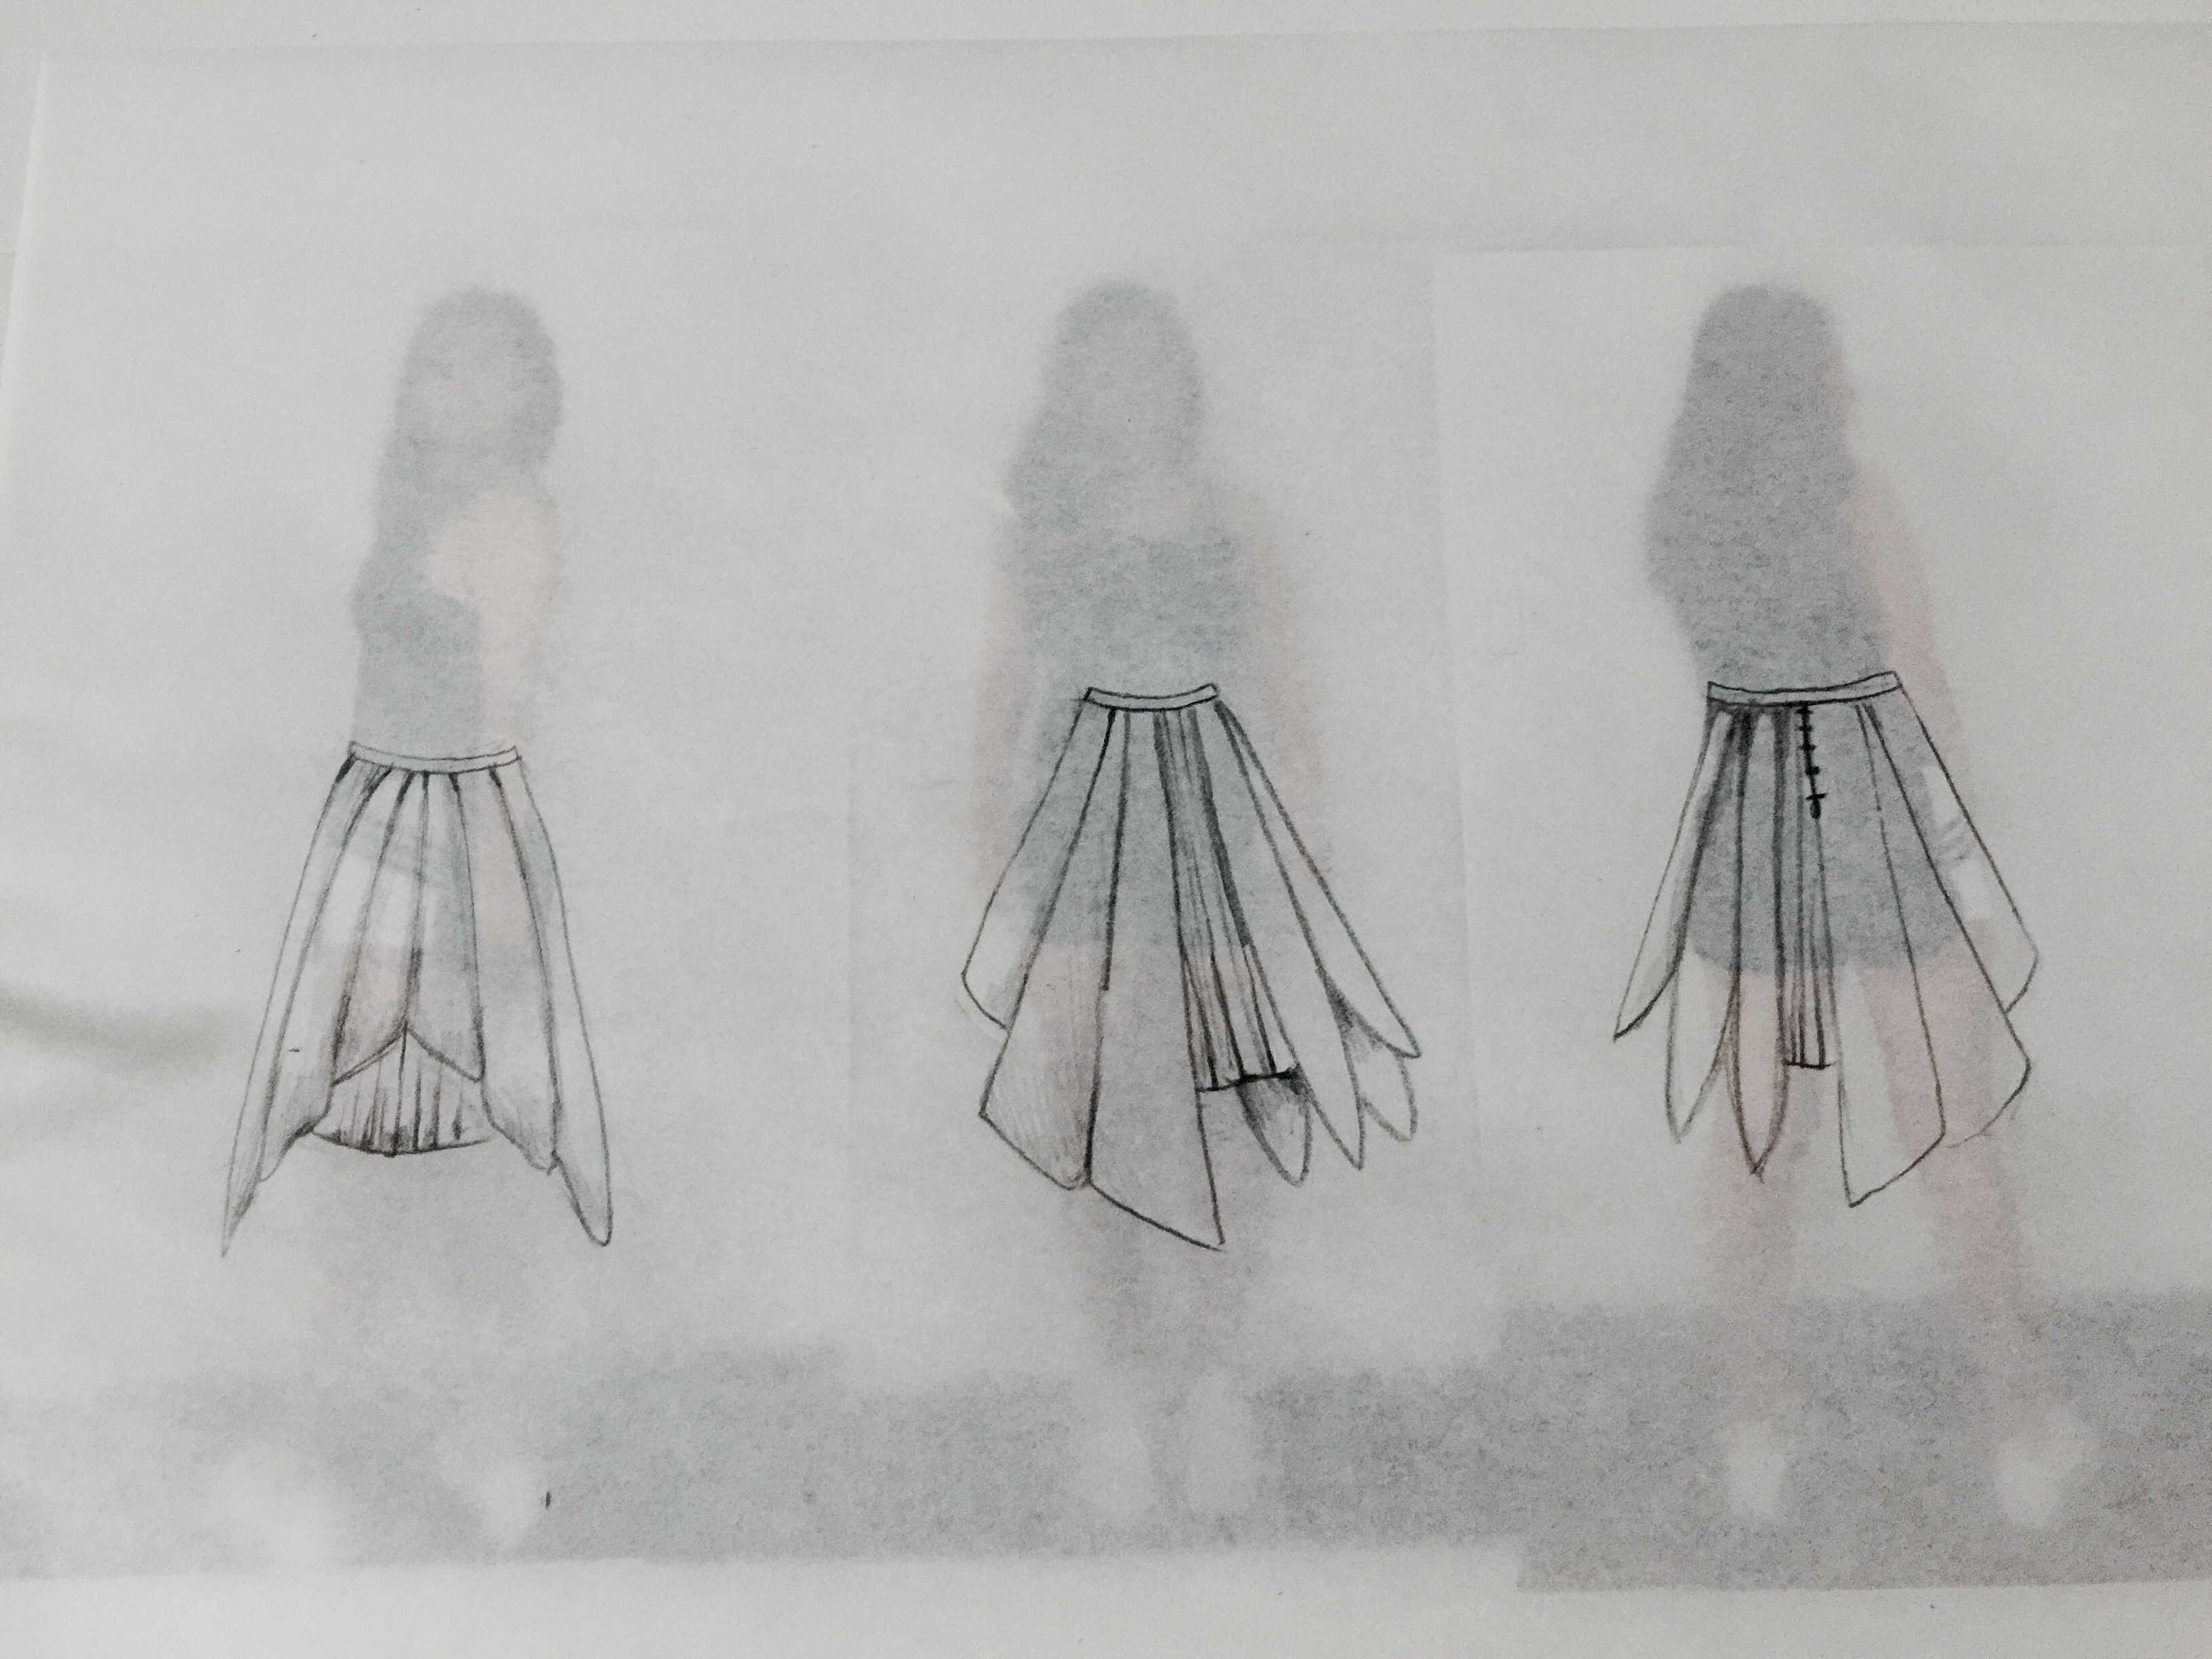 CTS1: Final Skirt Sketches (In-Progress)